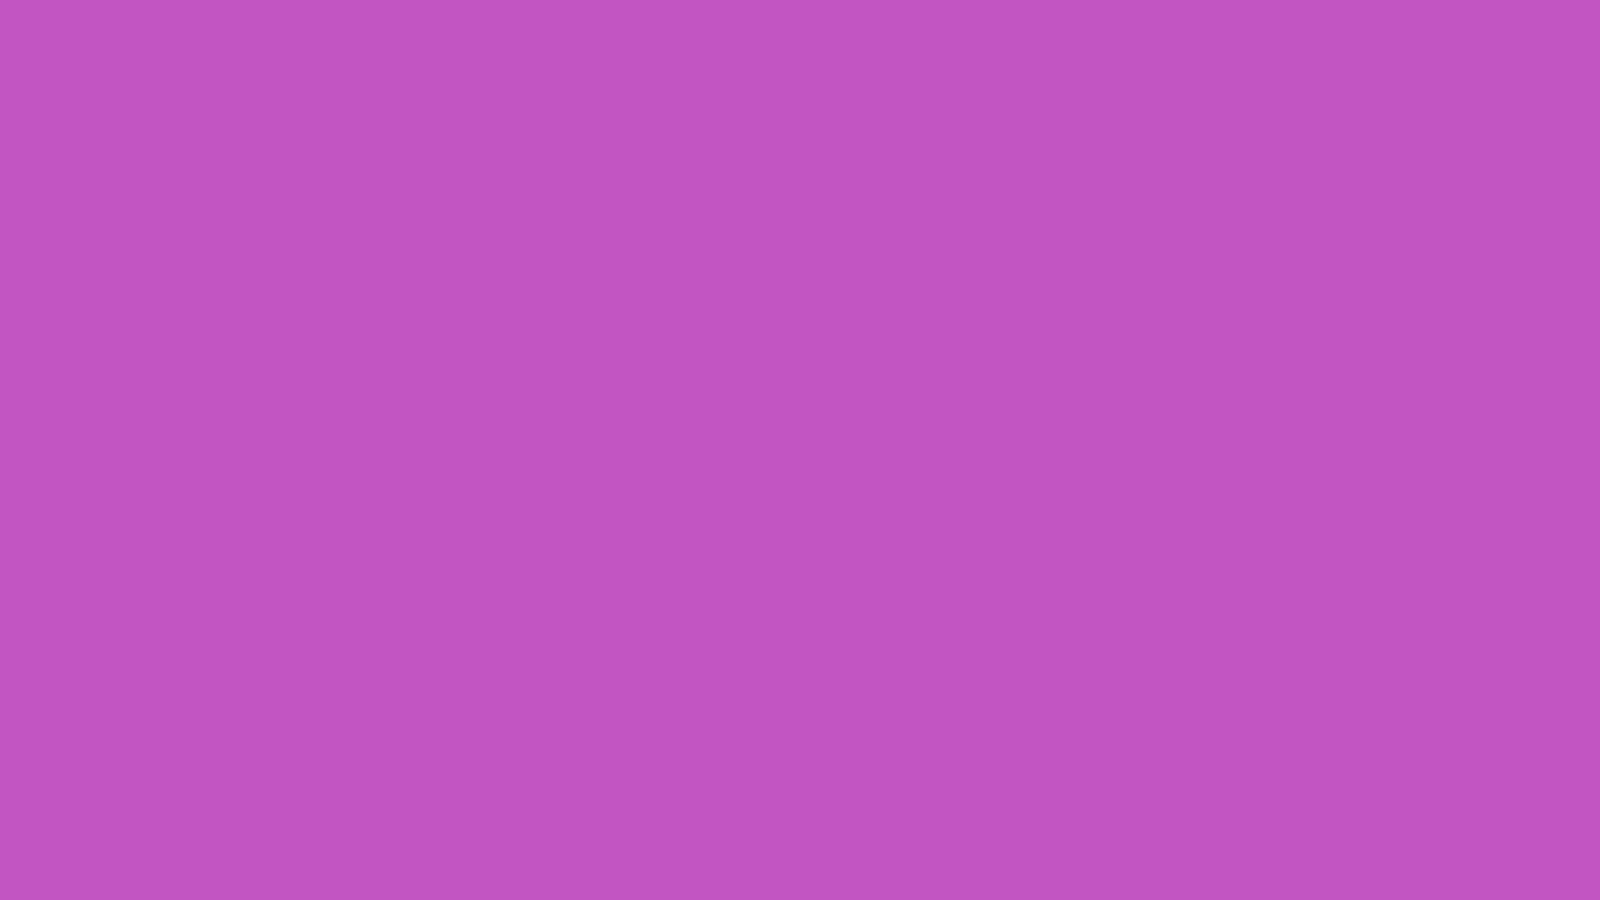 1600x900 Deep Fuchsia Solid Color Background